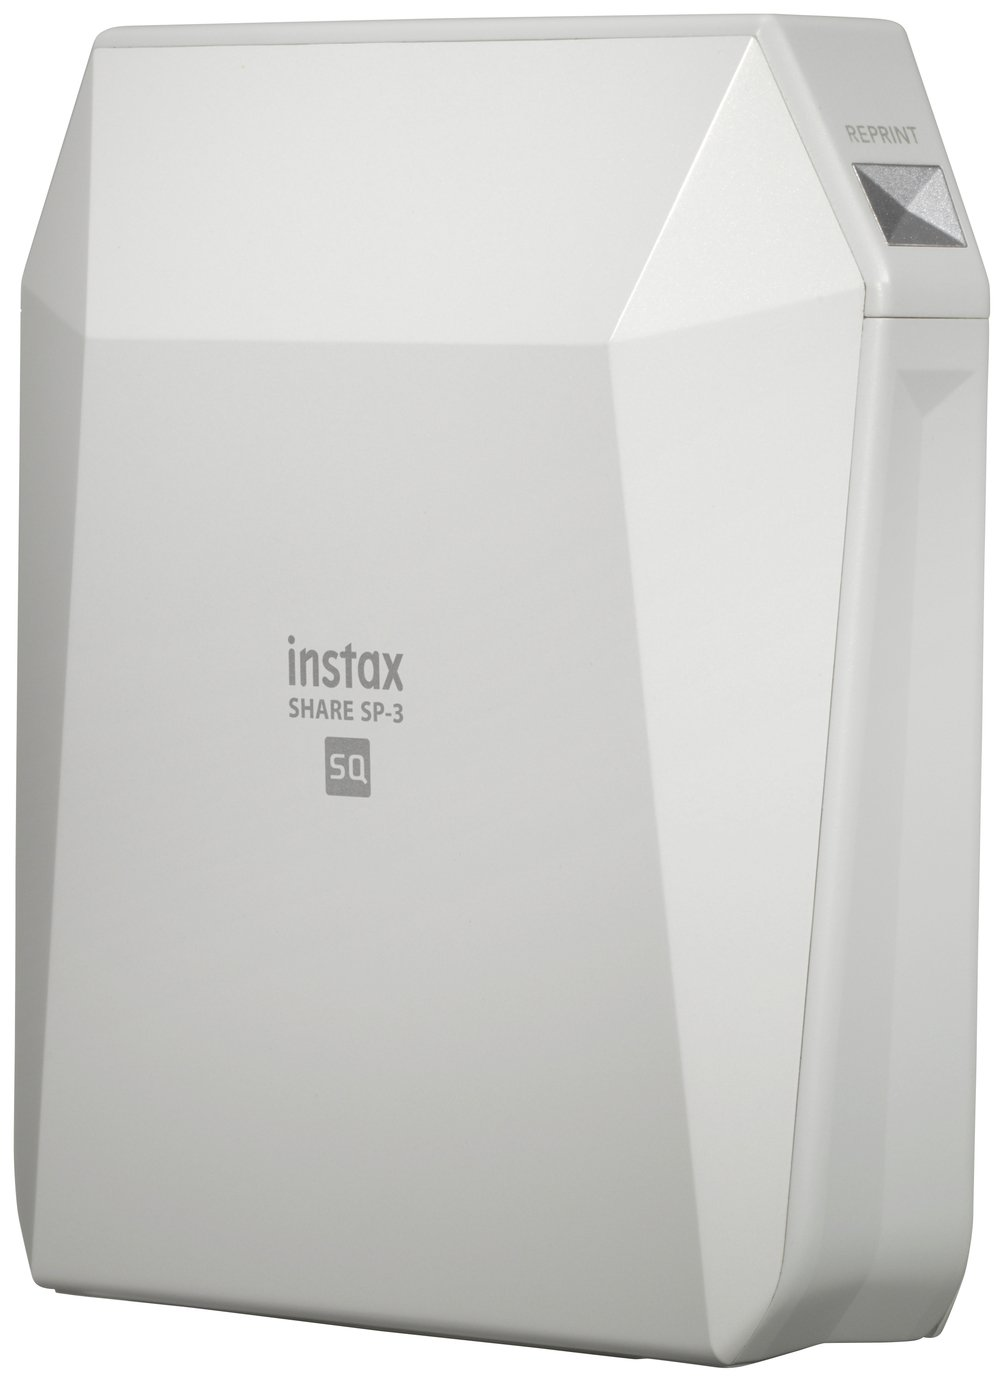 instax SP-3 Mobile Printer